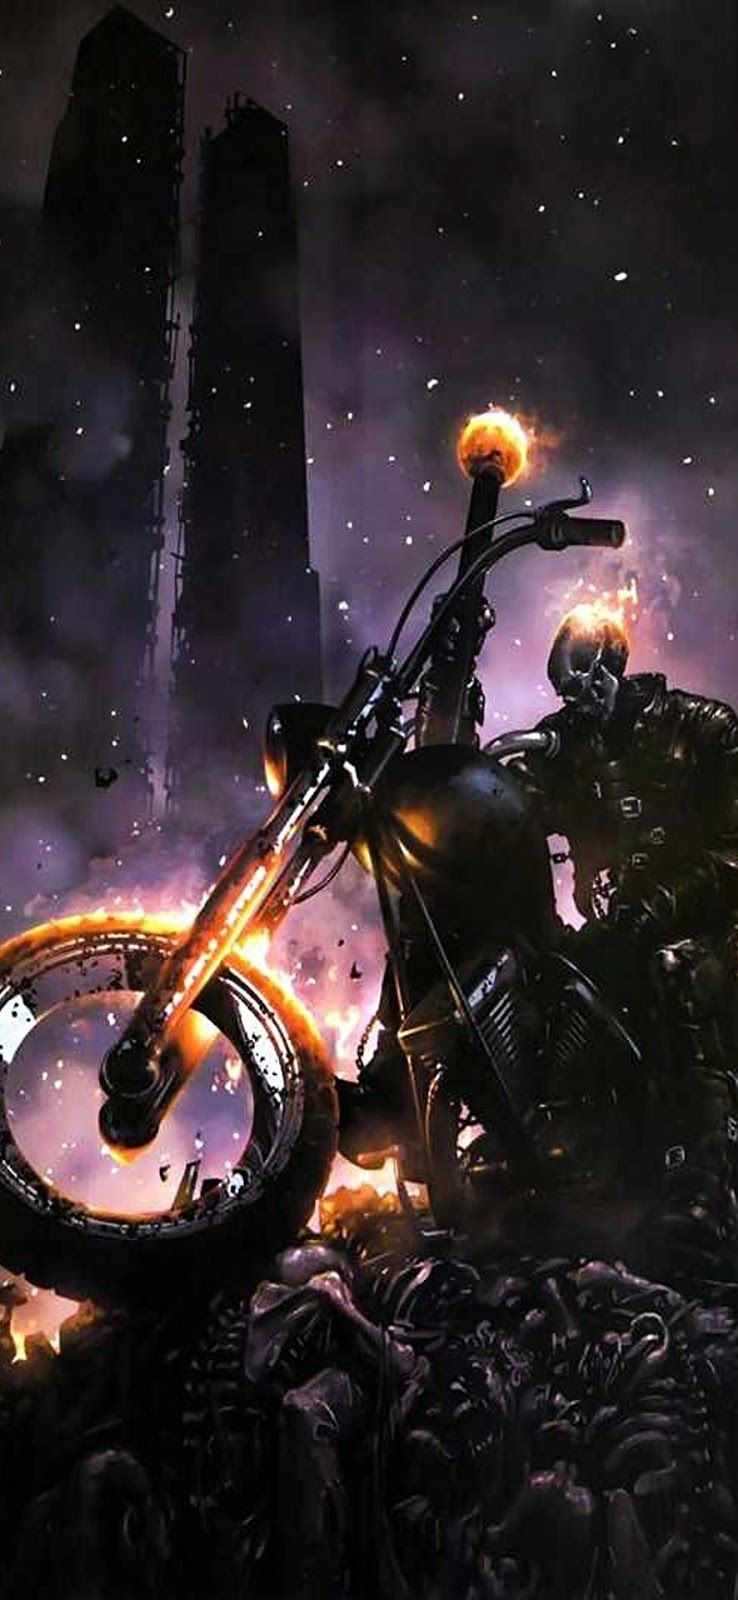 Ghost Rider Images Full Hd For Mobile Screen Wallpaper Background Ghost Rider Bike Images Hd Ghos Ghost Rider Images Ghost Rider Marvel Ghost Rider Wallpaper Ghost rider full hd wallpaper for mobile